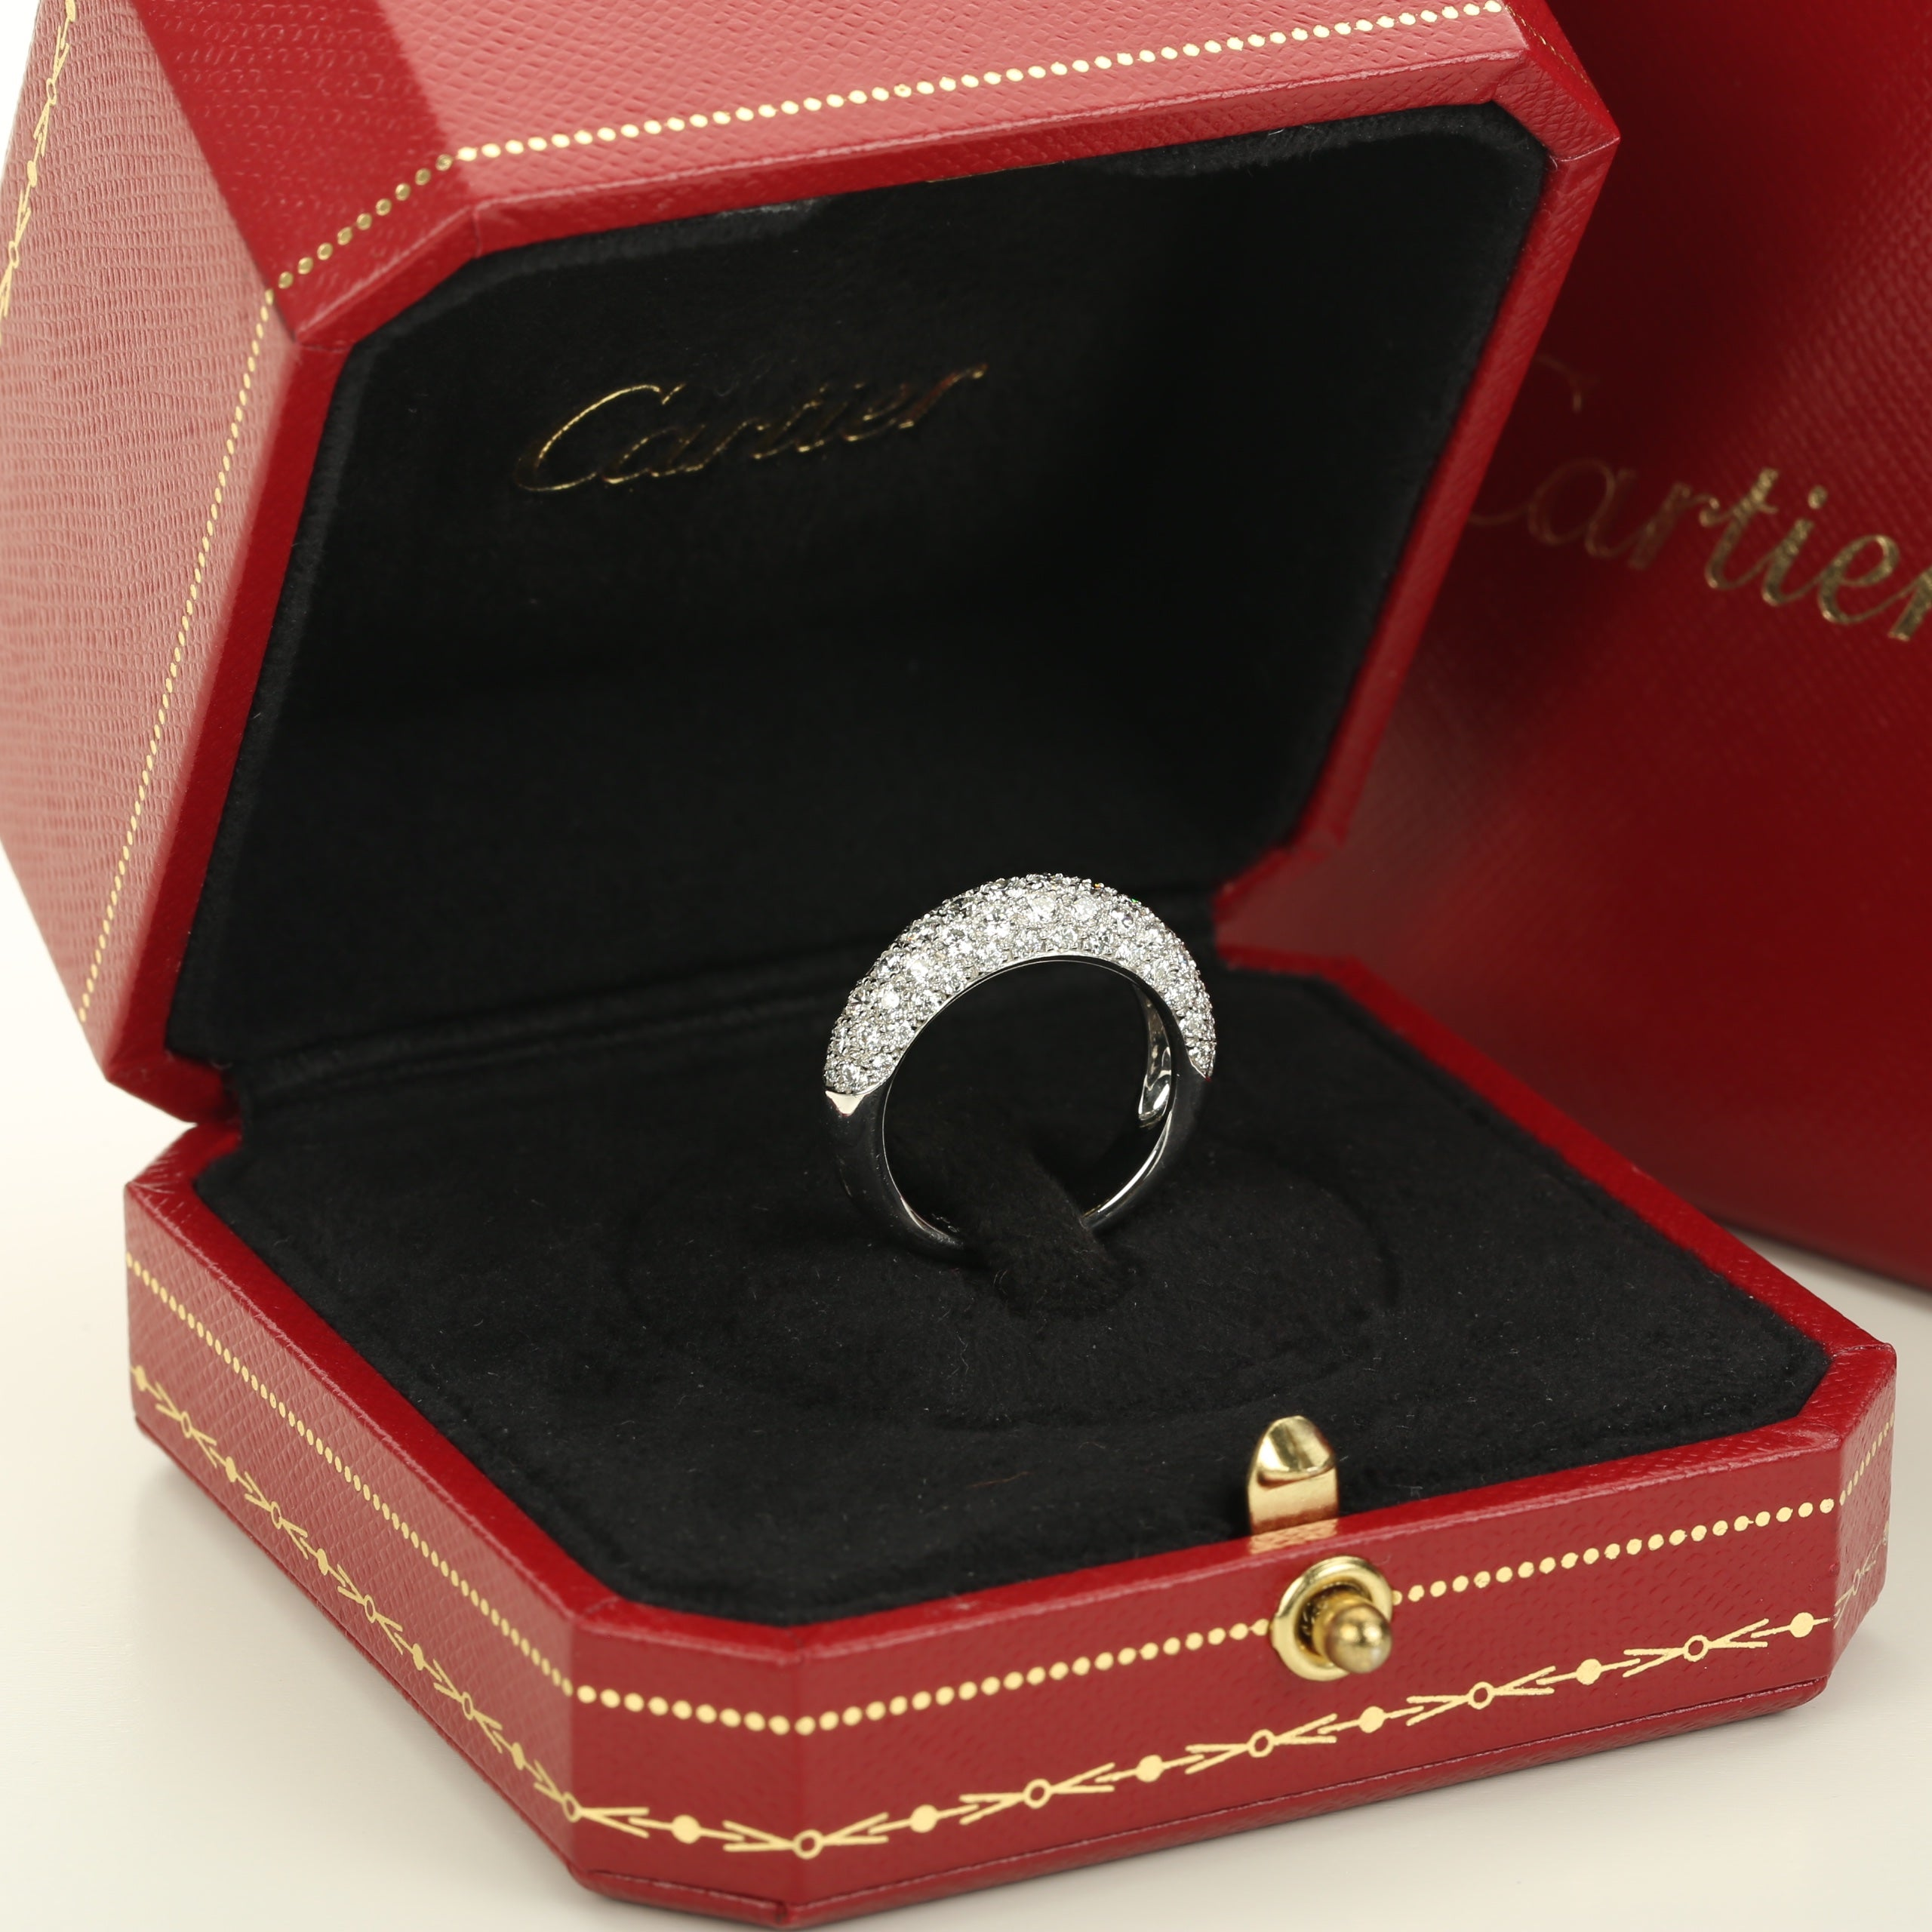 18K white gold and diamonds Étincelle de Cartier ring 1.33 cts size 51EU 5.75 US - Terrafinejewelry